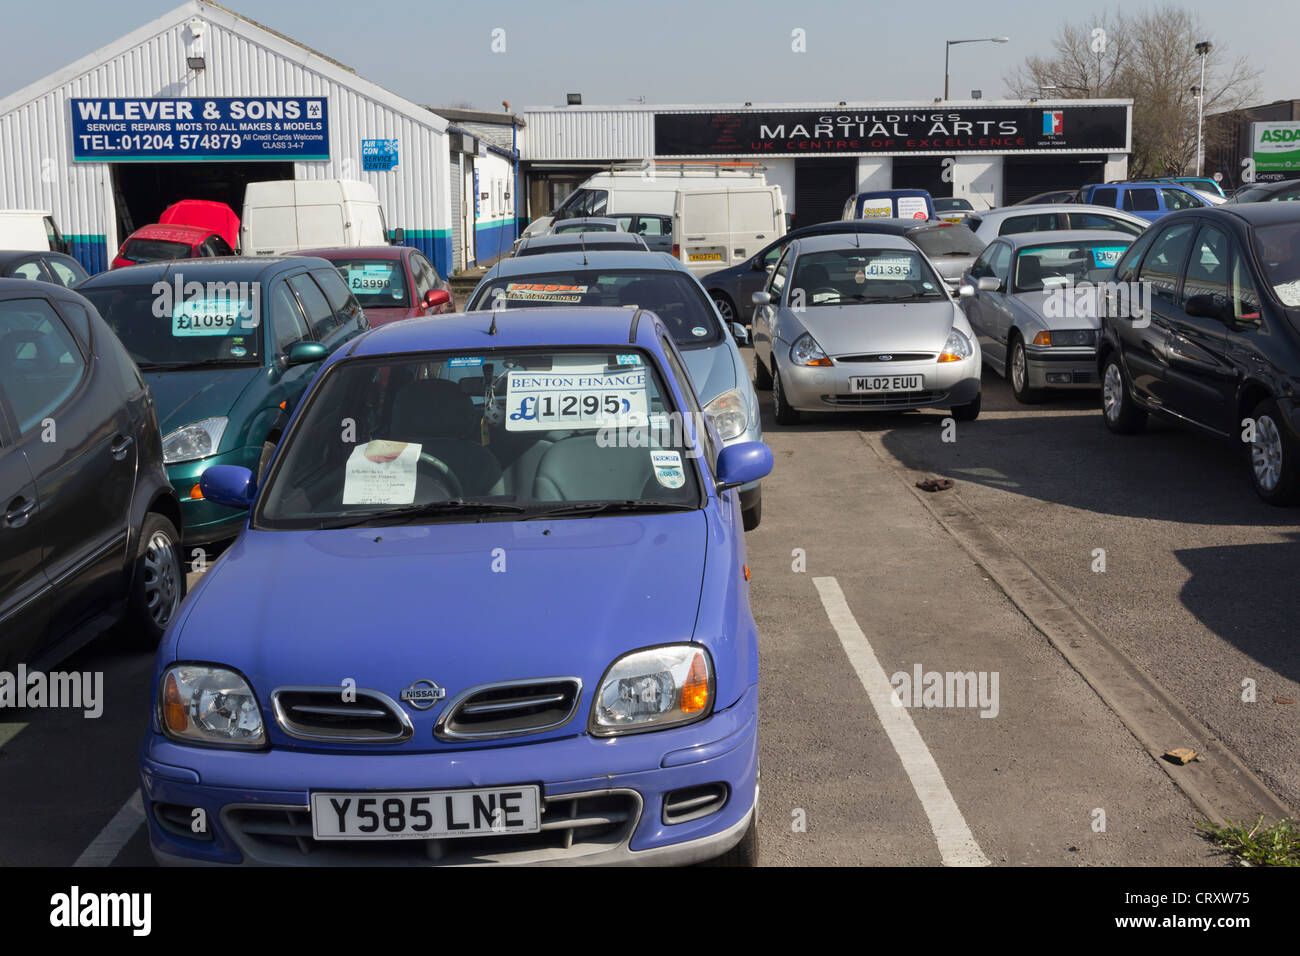 Small open air secondhand car sales site on Albert Road, Farnworth. - Stock Image